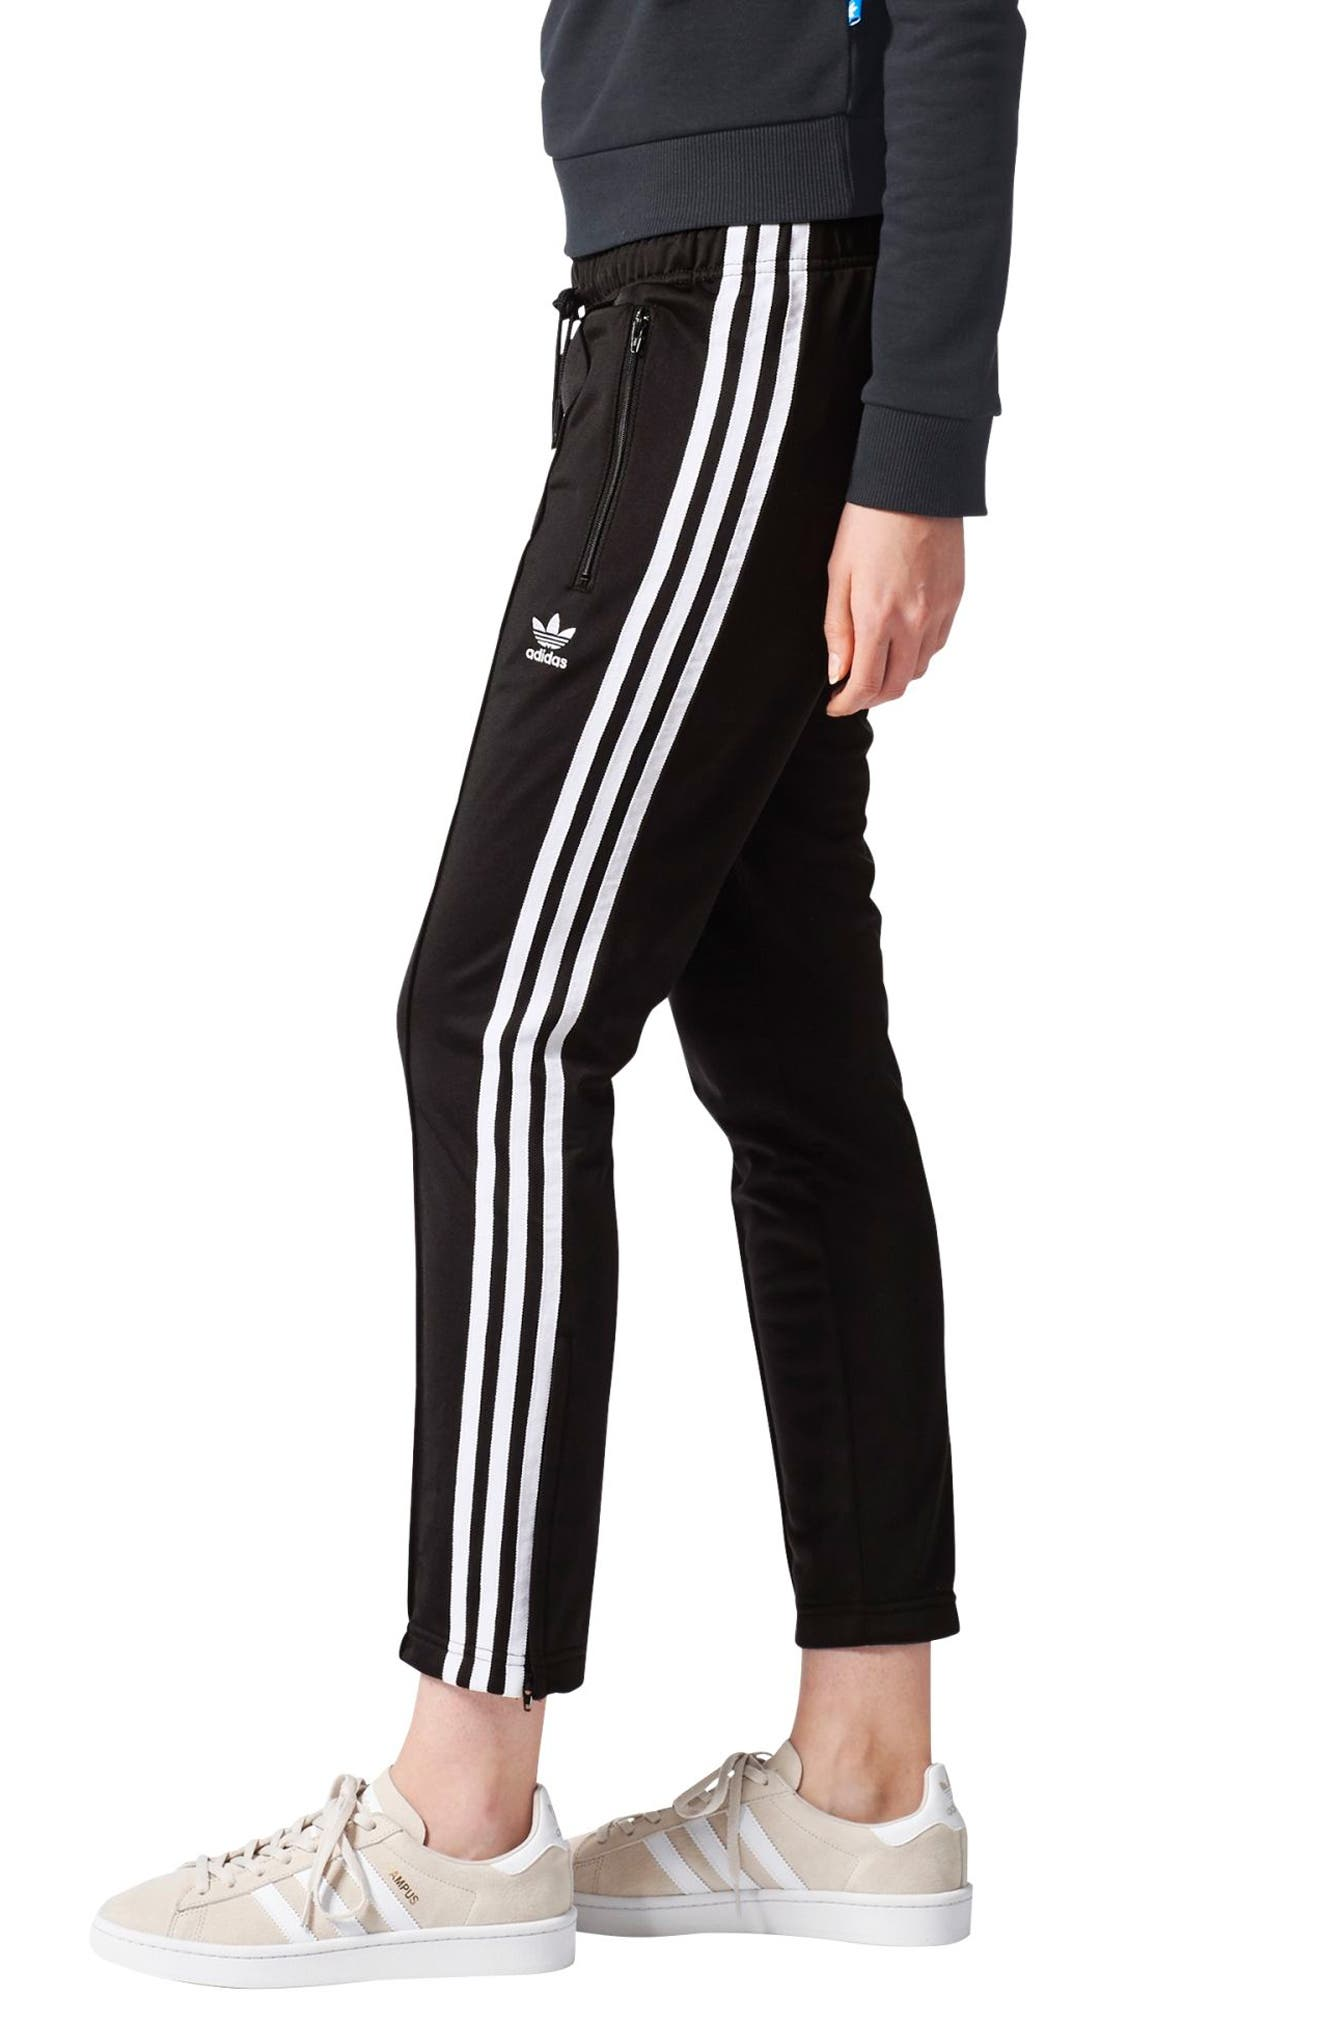 Originals Crop Pants,                             Alternate thumbnail 3, color,                             001